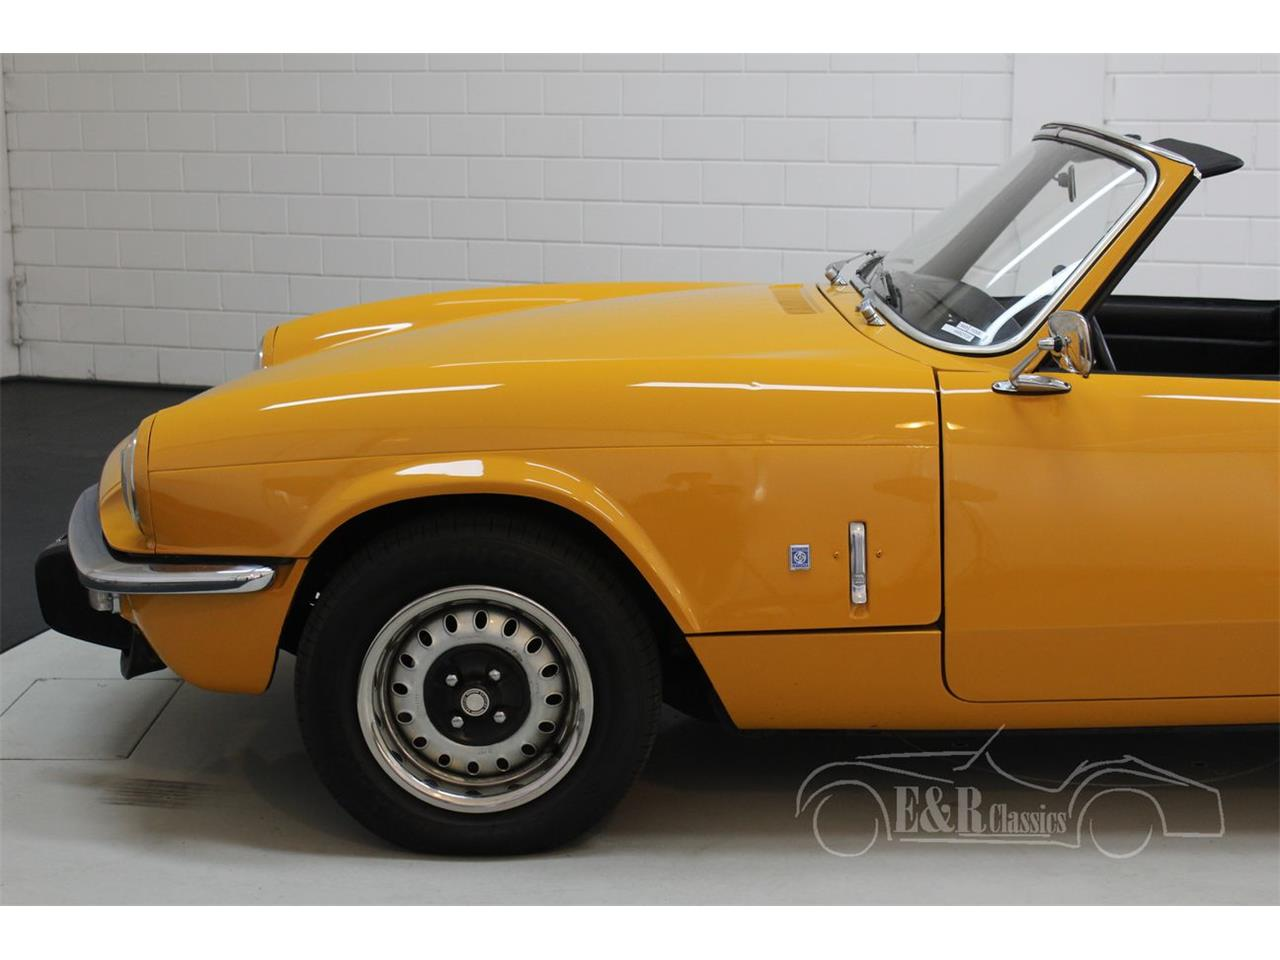 Large Picture of 1974 Triumph Spitfire - $16,850.00 Offered by E & R Classics - QIIQ